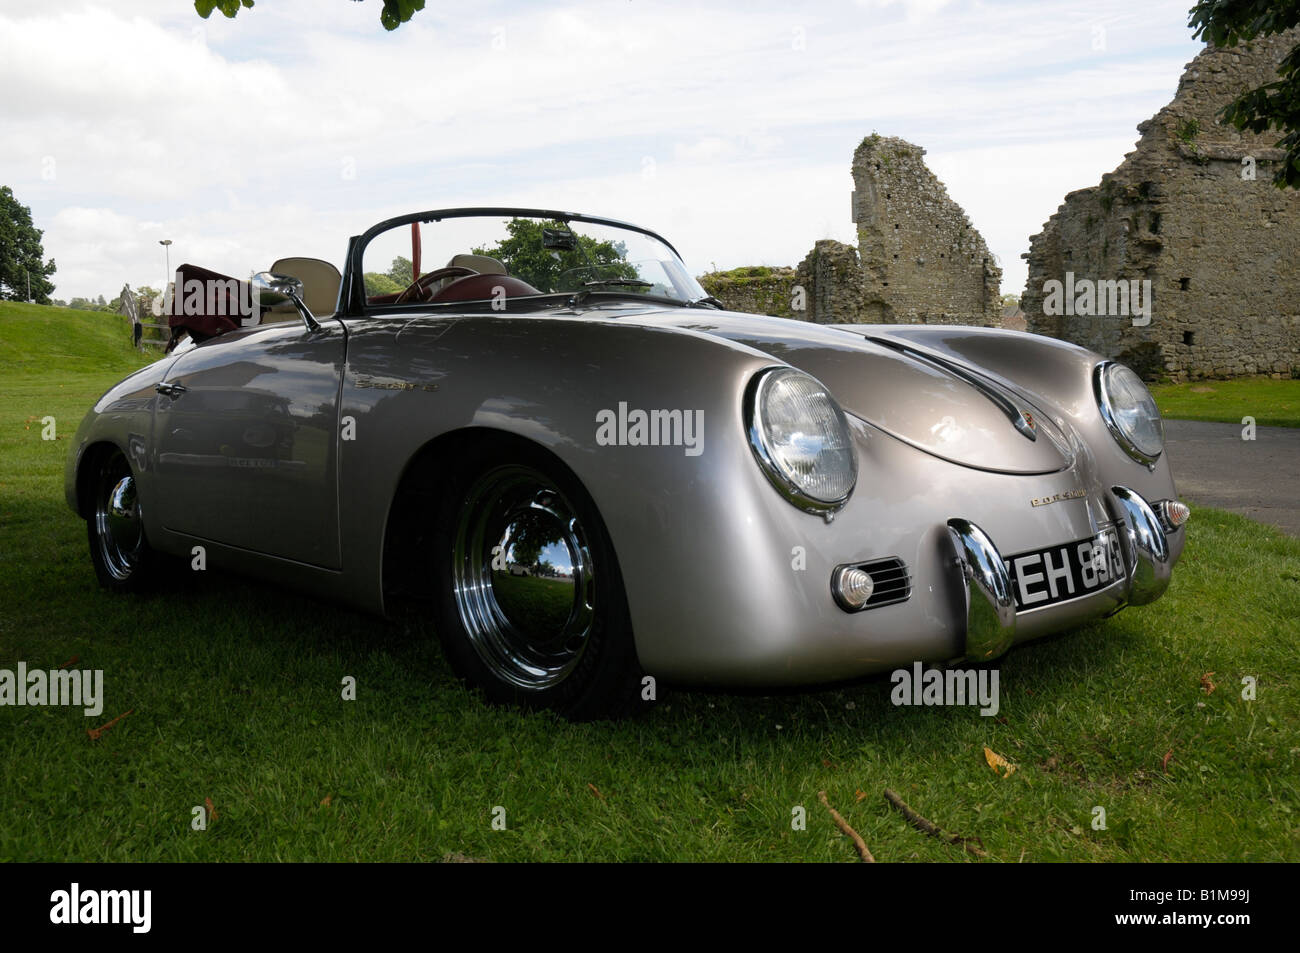 Chesil Speedster 2 Kit Car Loose Replica Of A Porsche 356